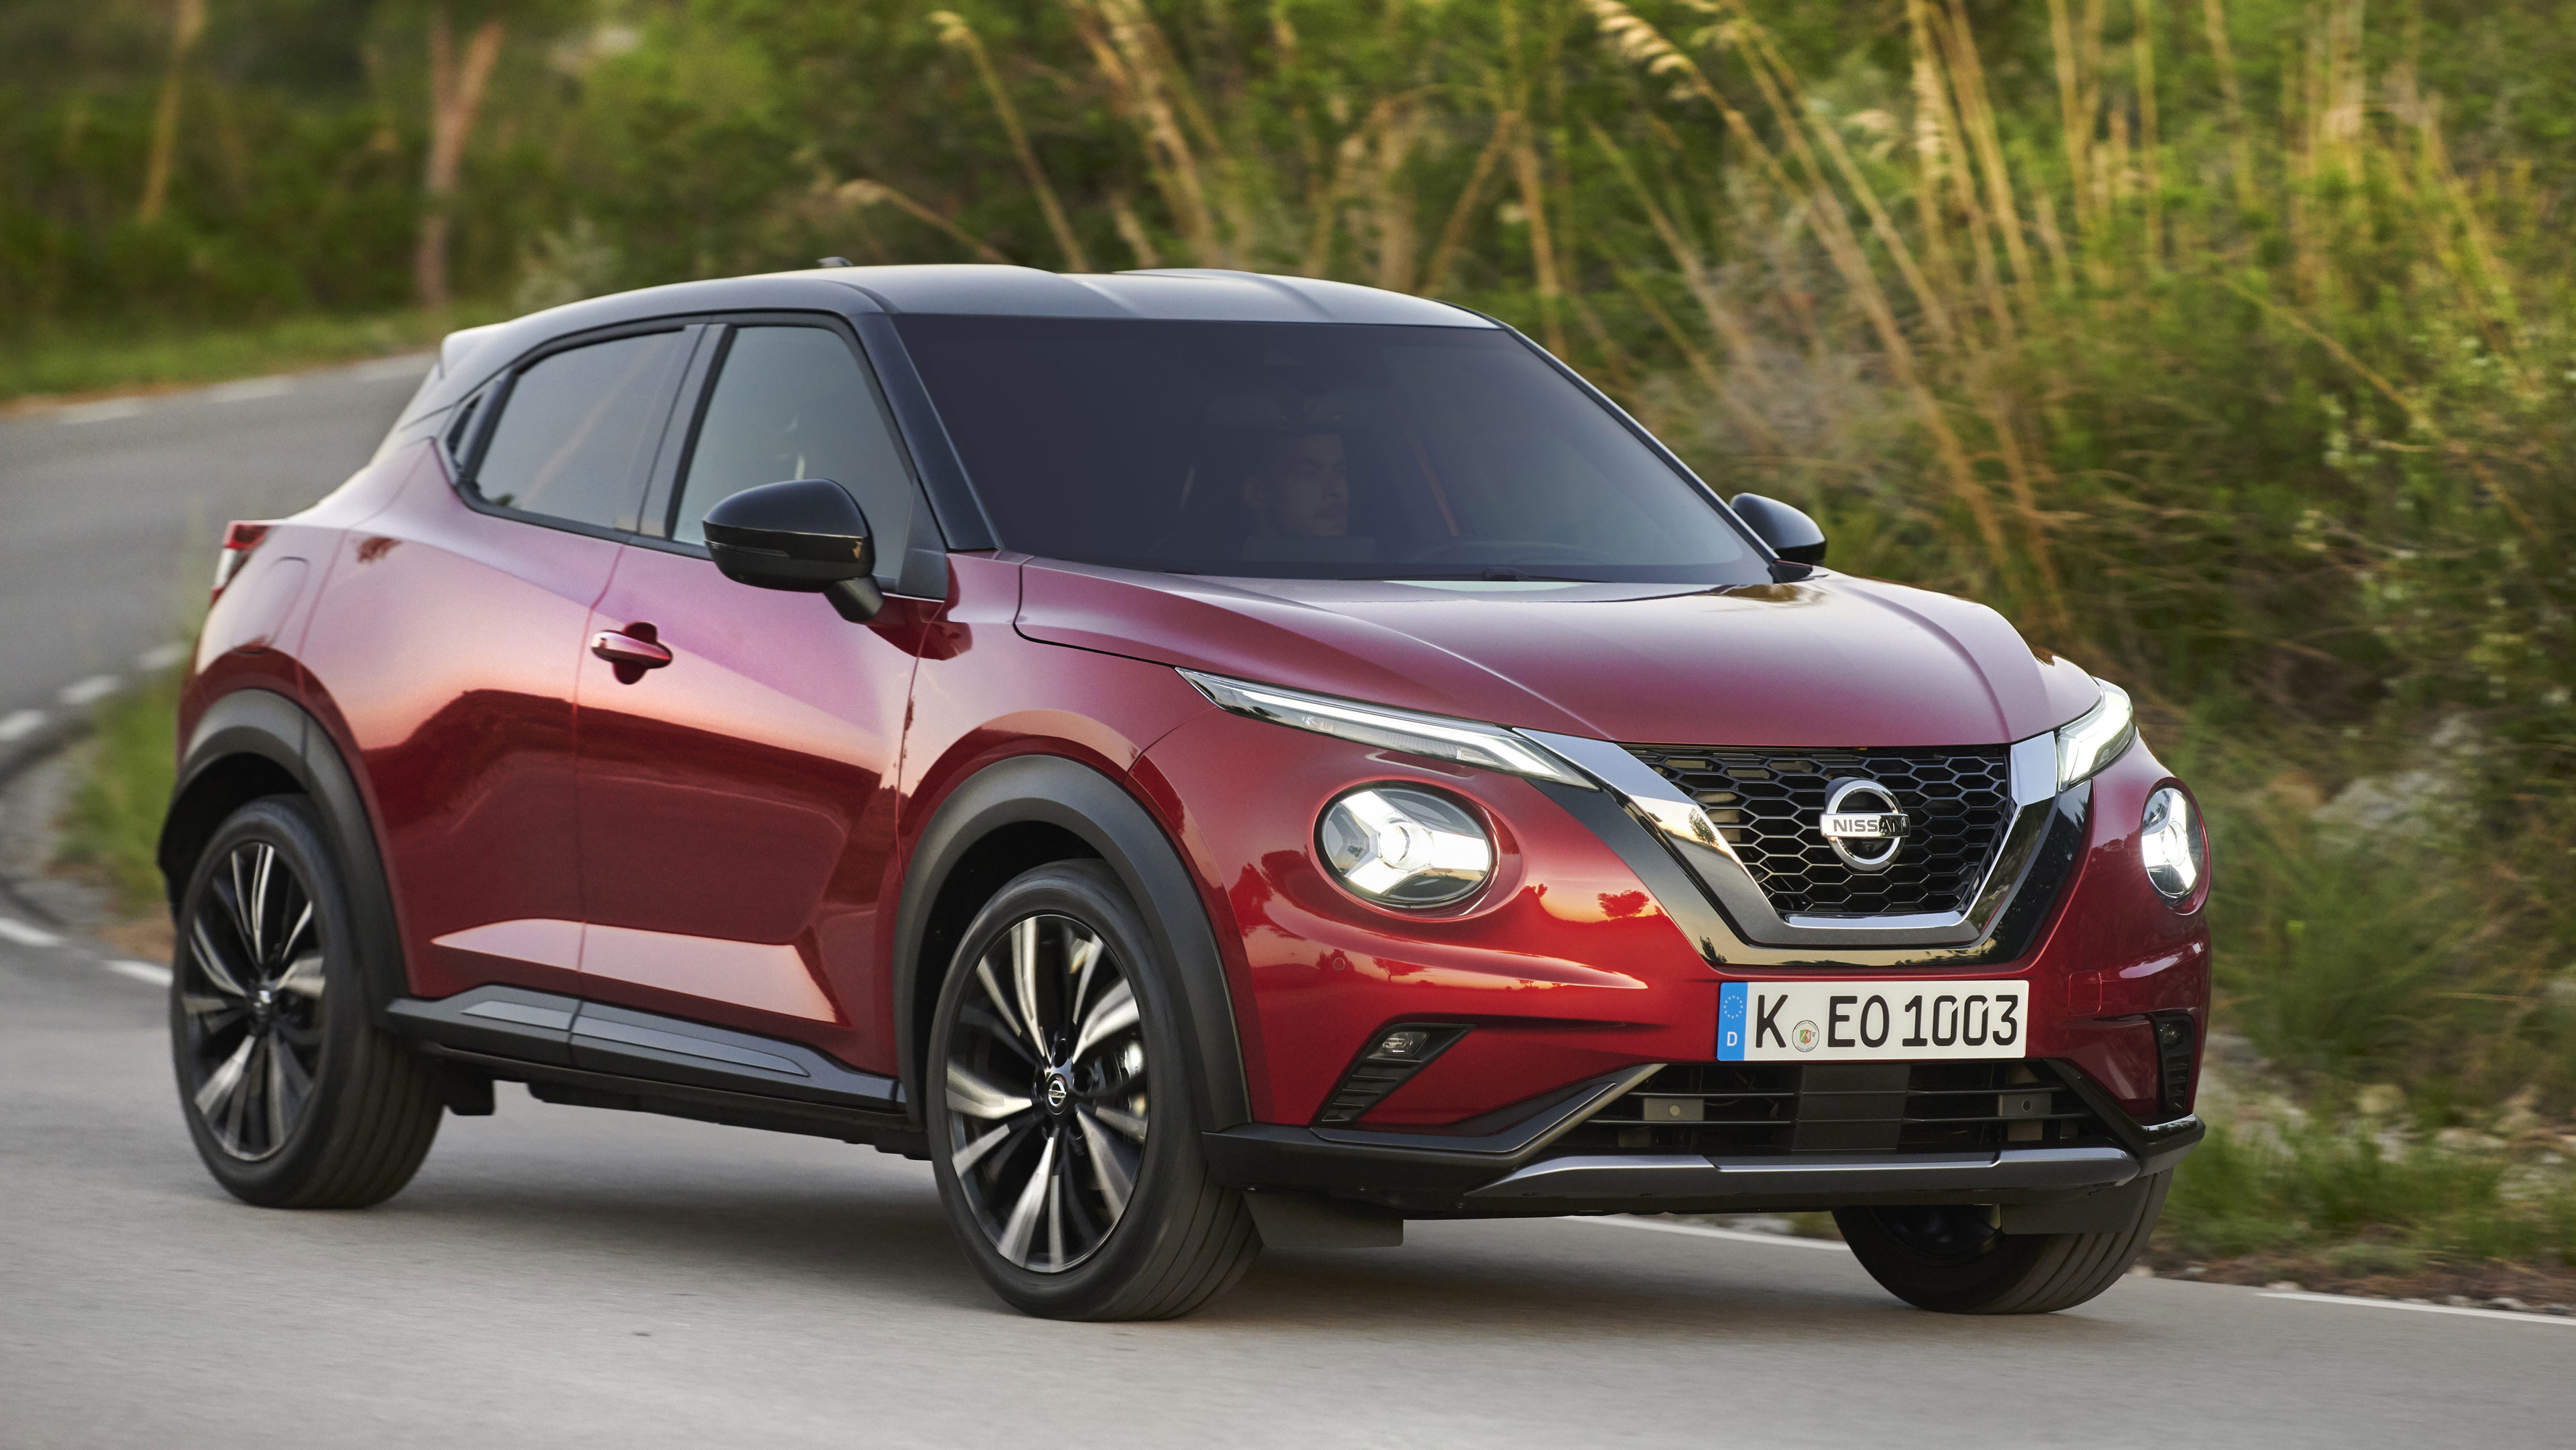 Yellow Nissan Juke Used Cars For Sale On Auto Trader Uk